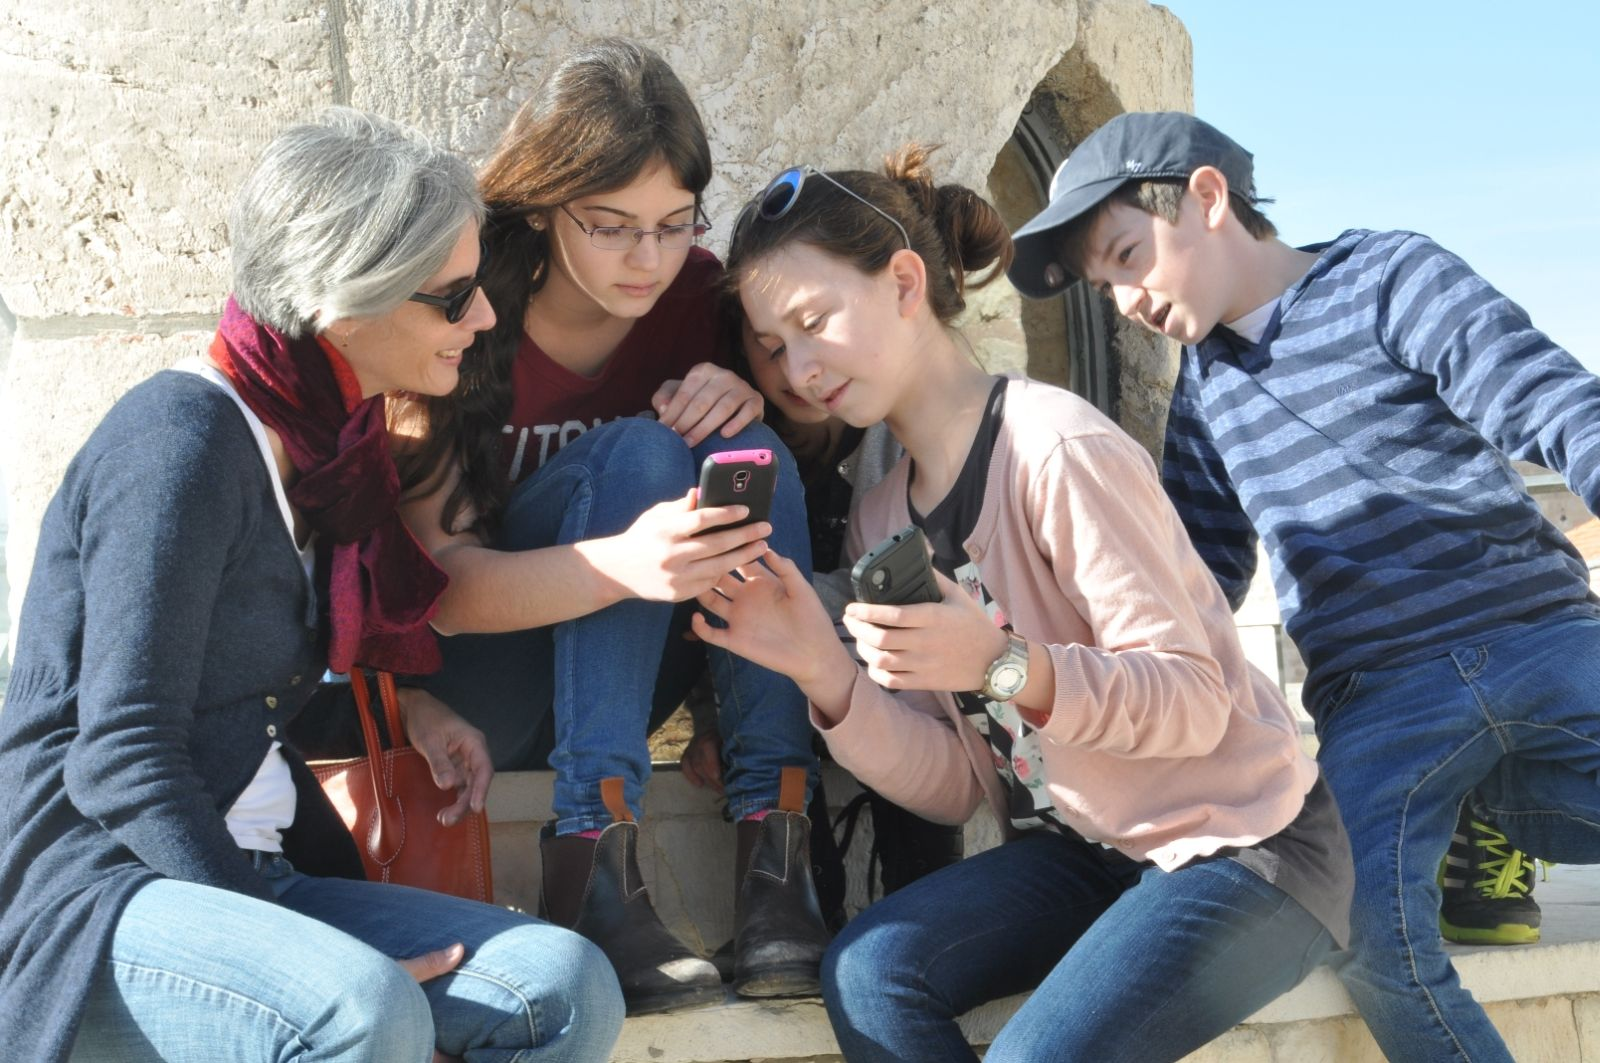 Visitors to the Tower of David Museum using the Quesity app. Photo by Naftali Halberstadt